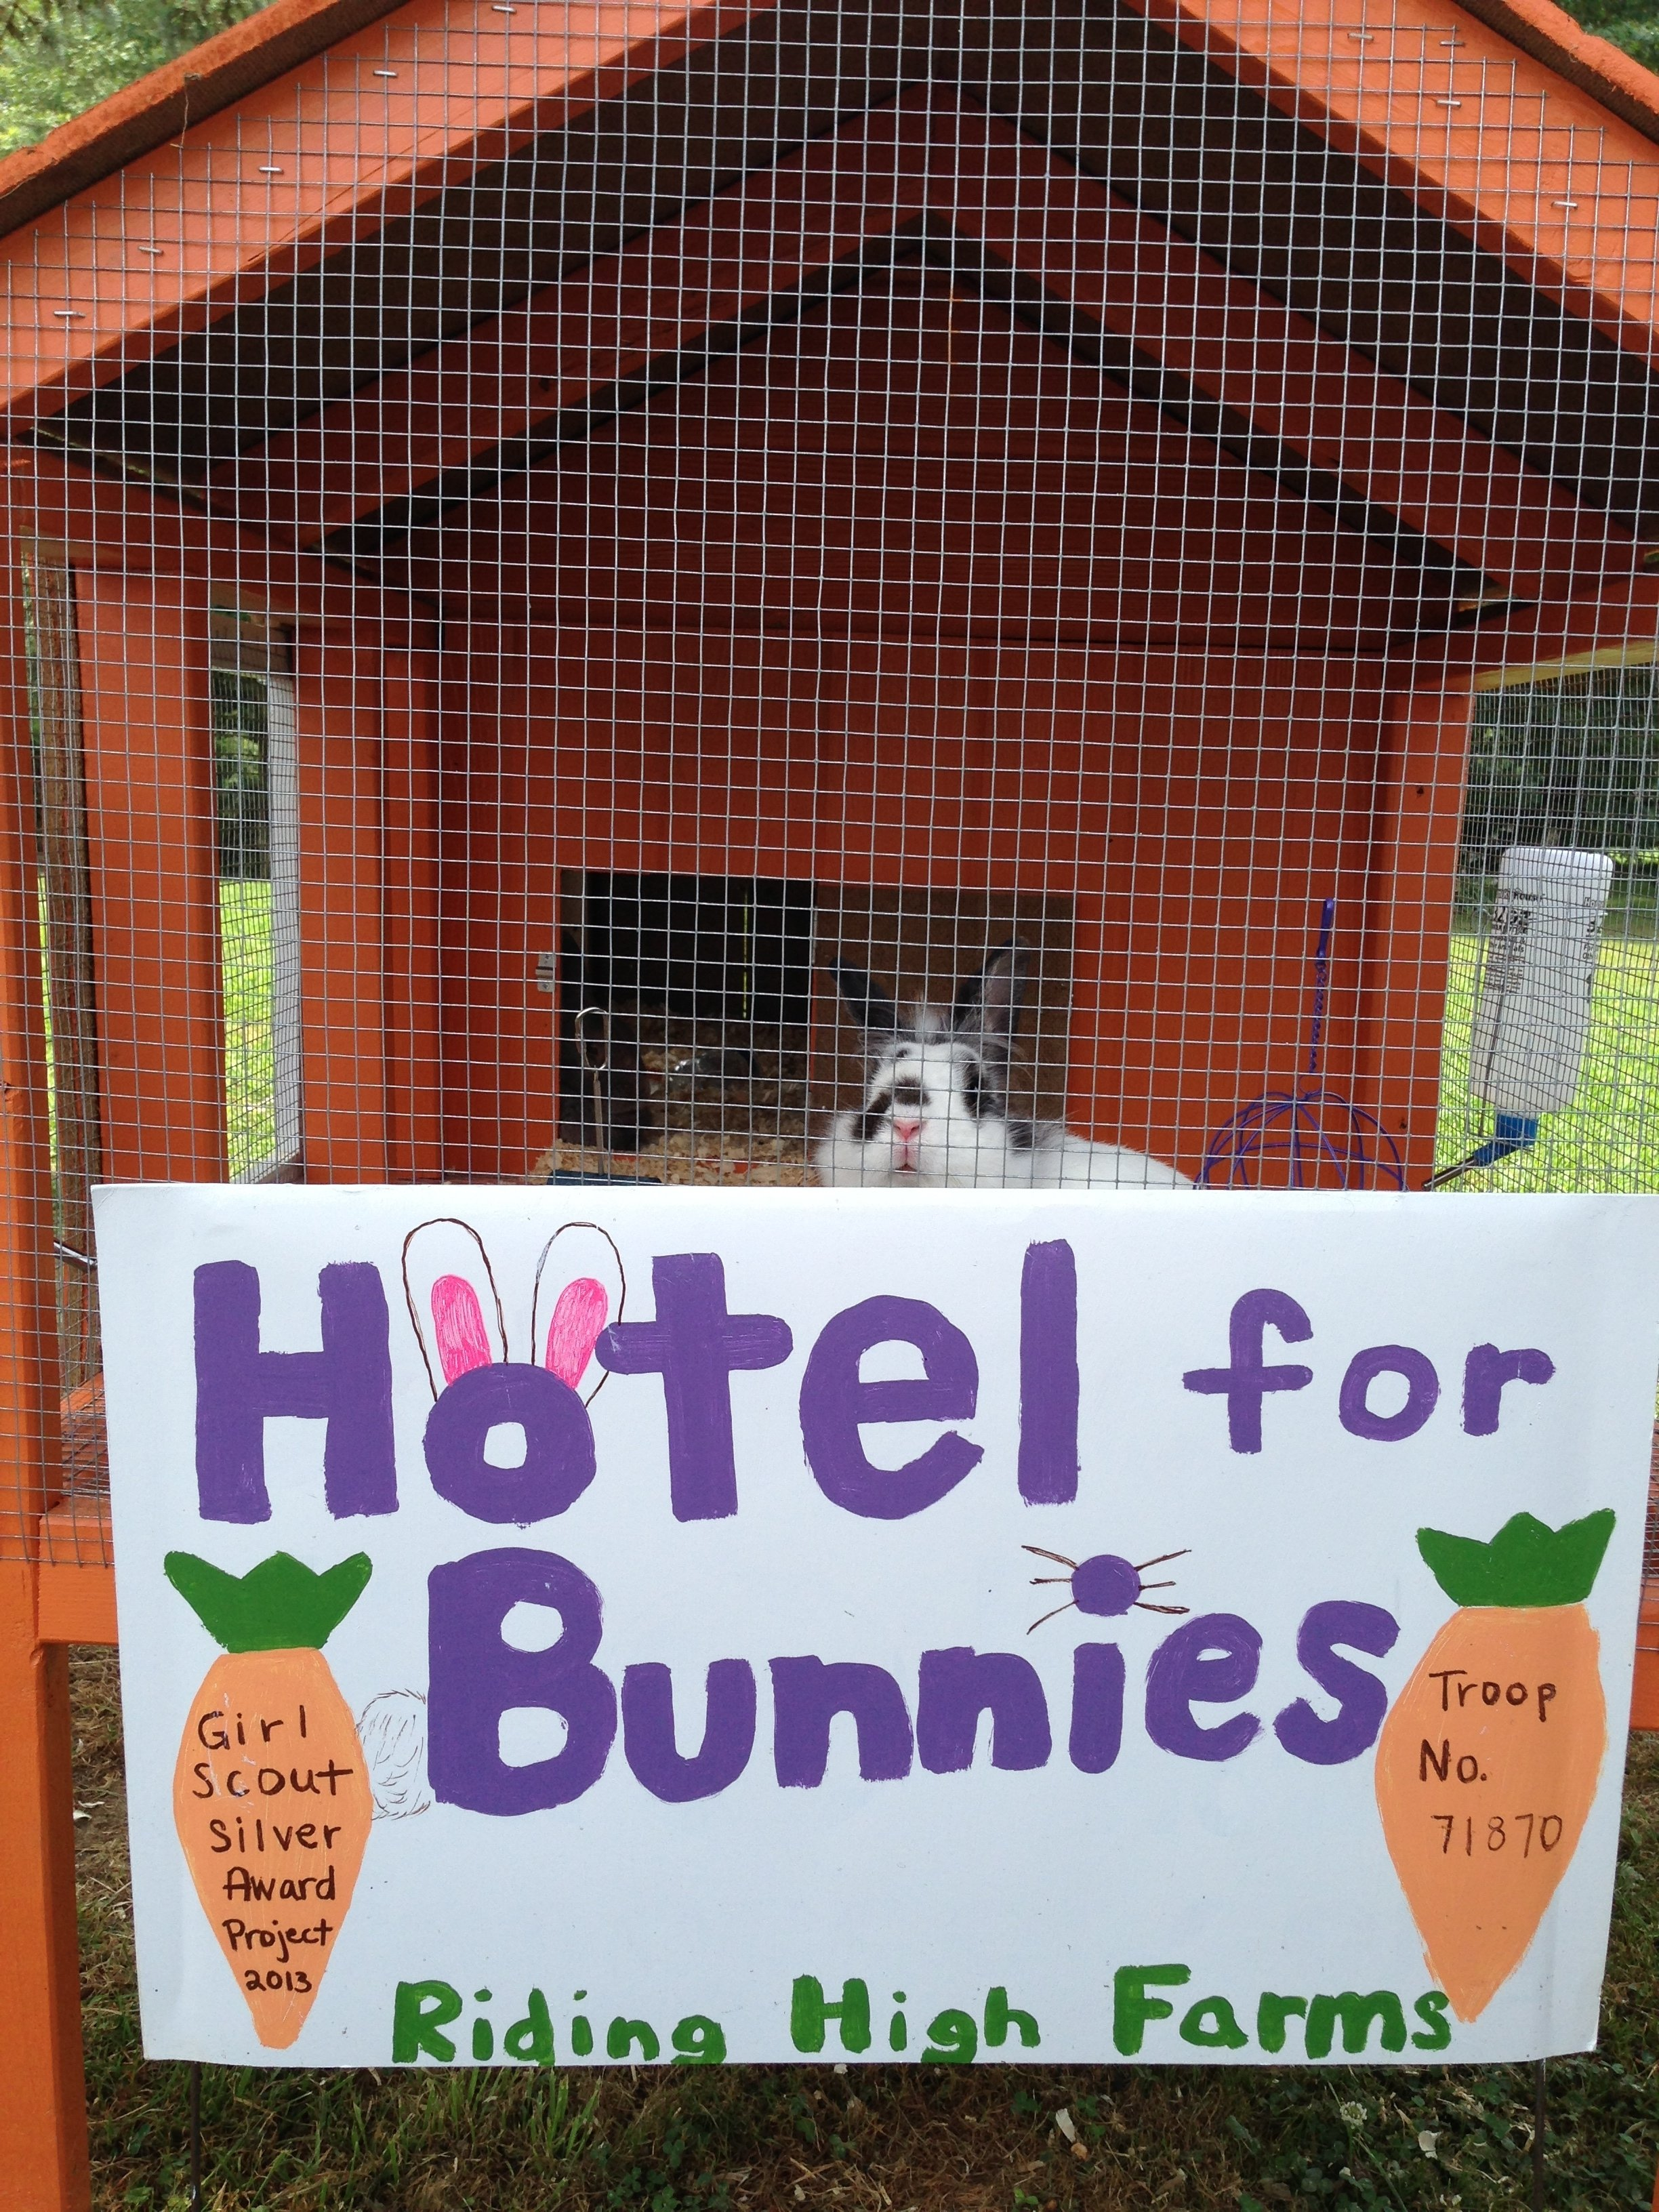 10 Fashionable Girl Scout Silver Award Project Ideas hotel for bunnies a safe haven for our fluffy friends 1 2020